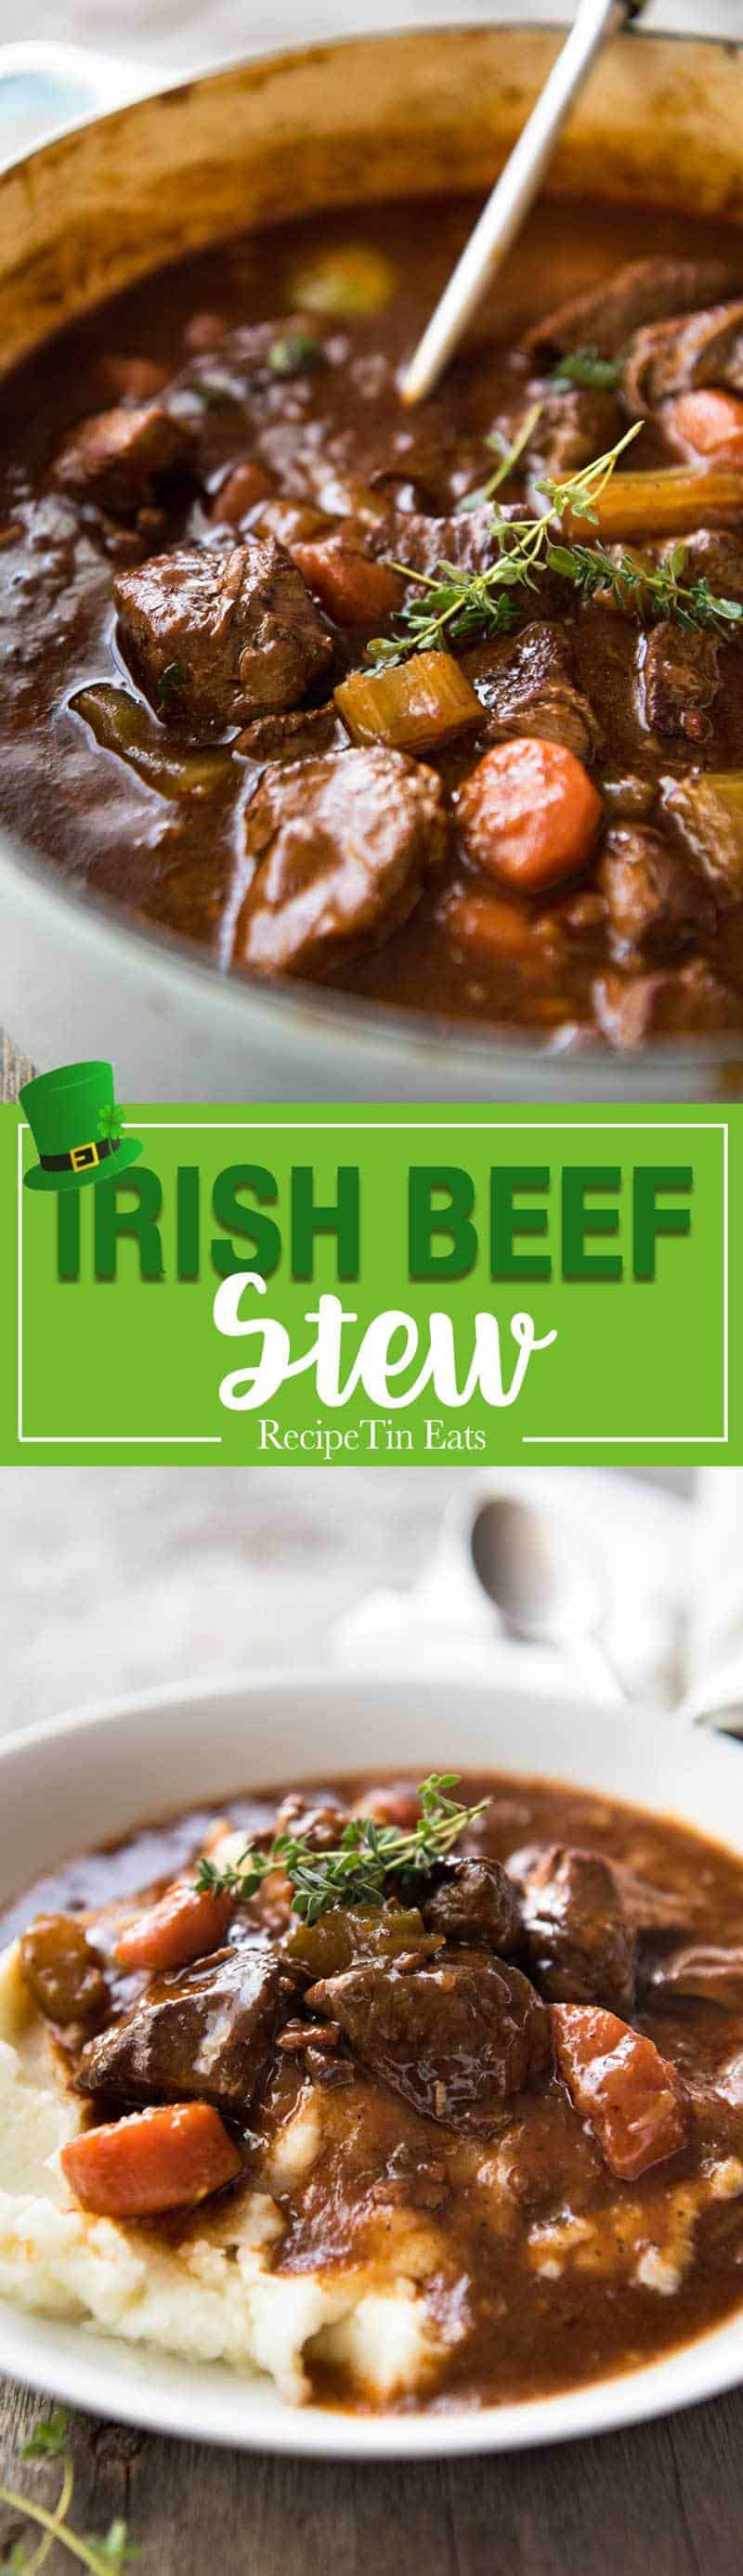 Irish Beef and Guinness Stew - The king of all stews! Fork tender beef in a rich thick sauce. Easy to make, just requires patience! Slow cooker, stove, oven and pressure cooker directions provided. recipetineats.com